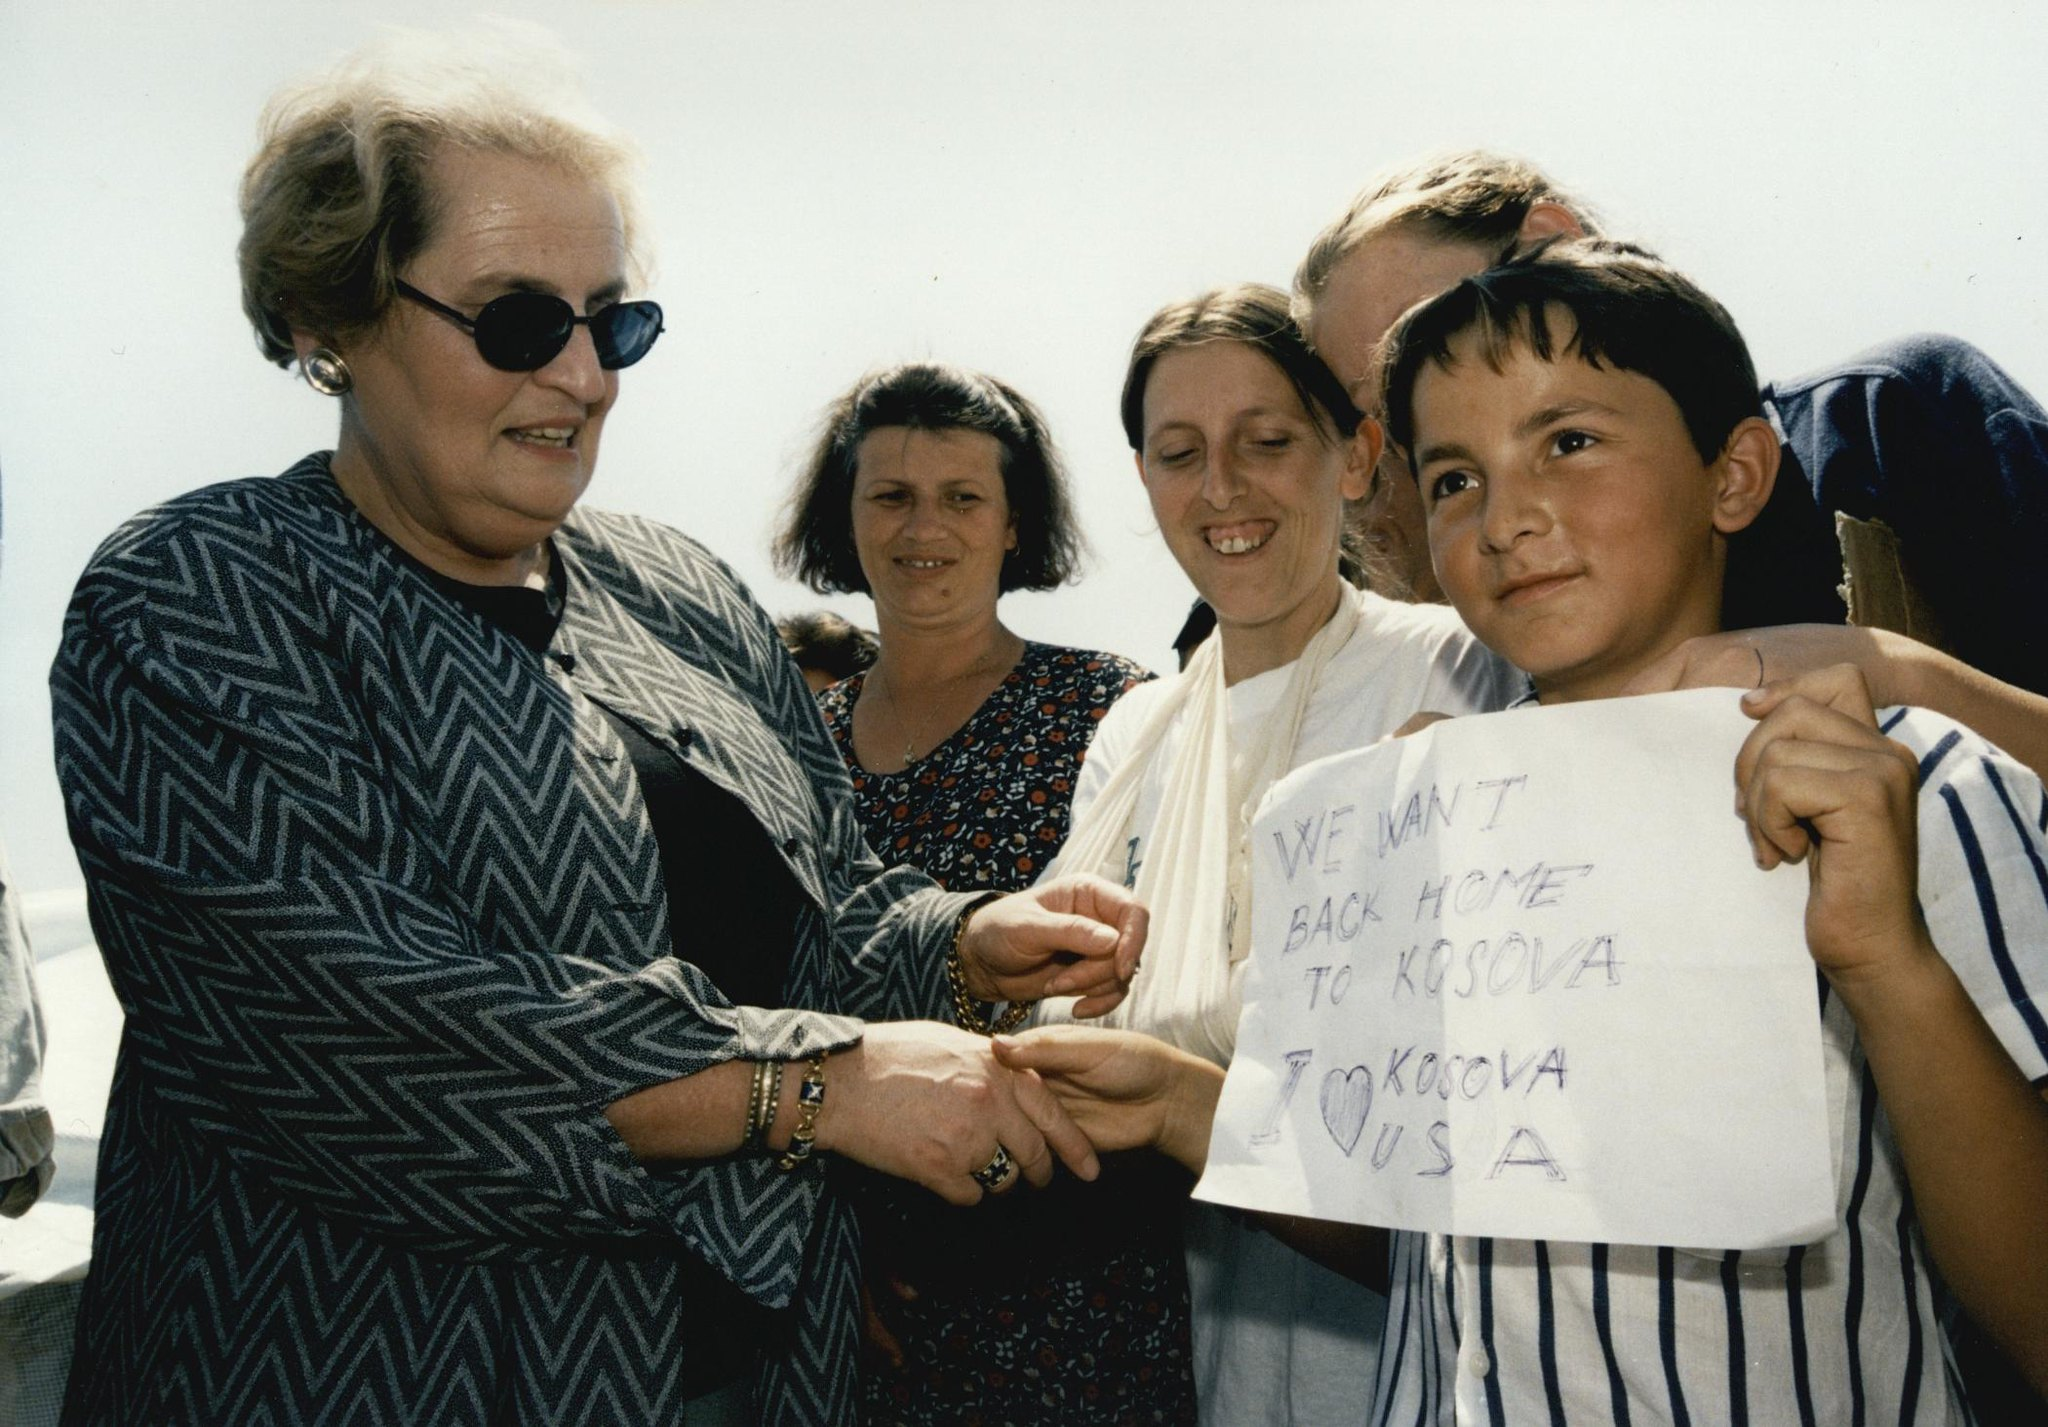 """U.S. Secretary of State Madeleine Albright greets boy holding sign that reads: """"We want back home to Kosova."""""""